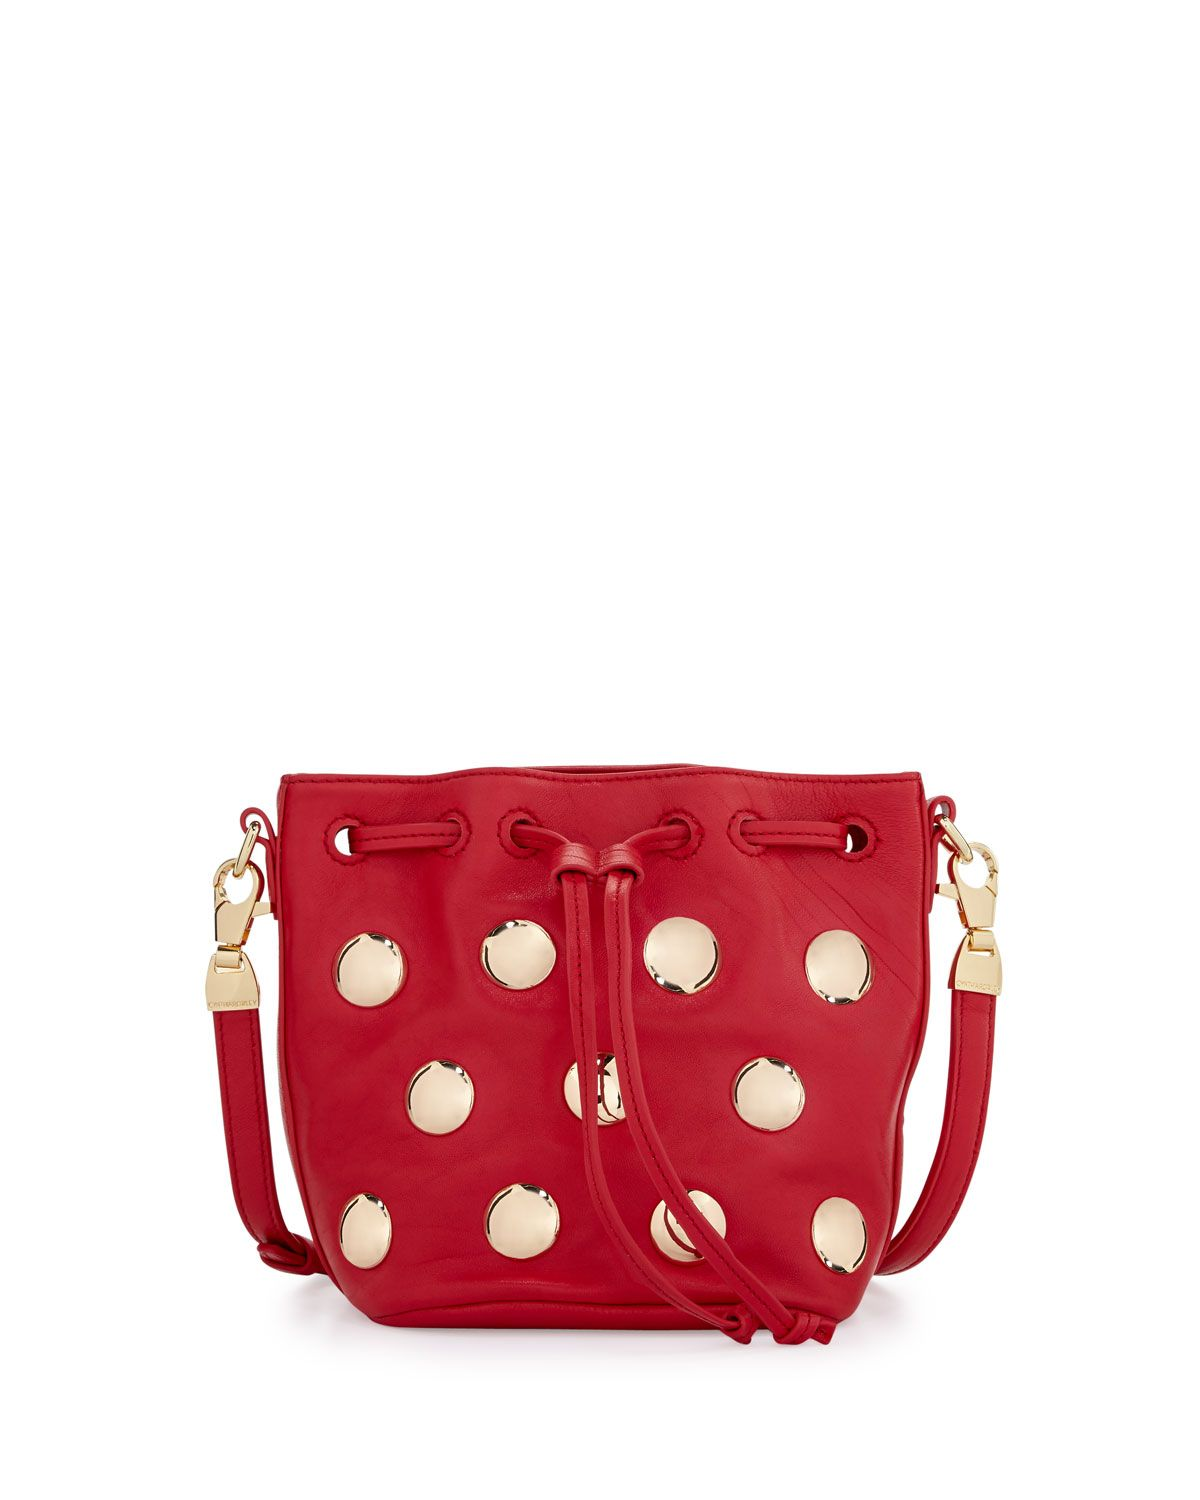 Cynthia Rowley Paisley Studded Leather Crossbody Bag, Red